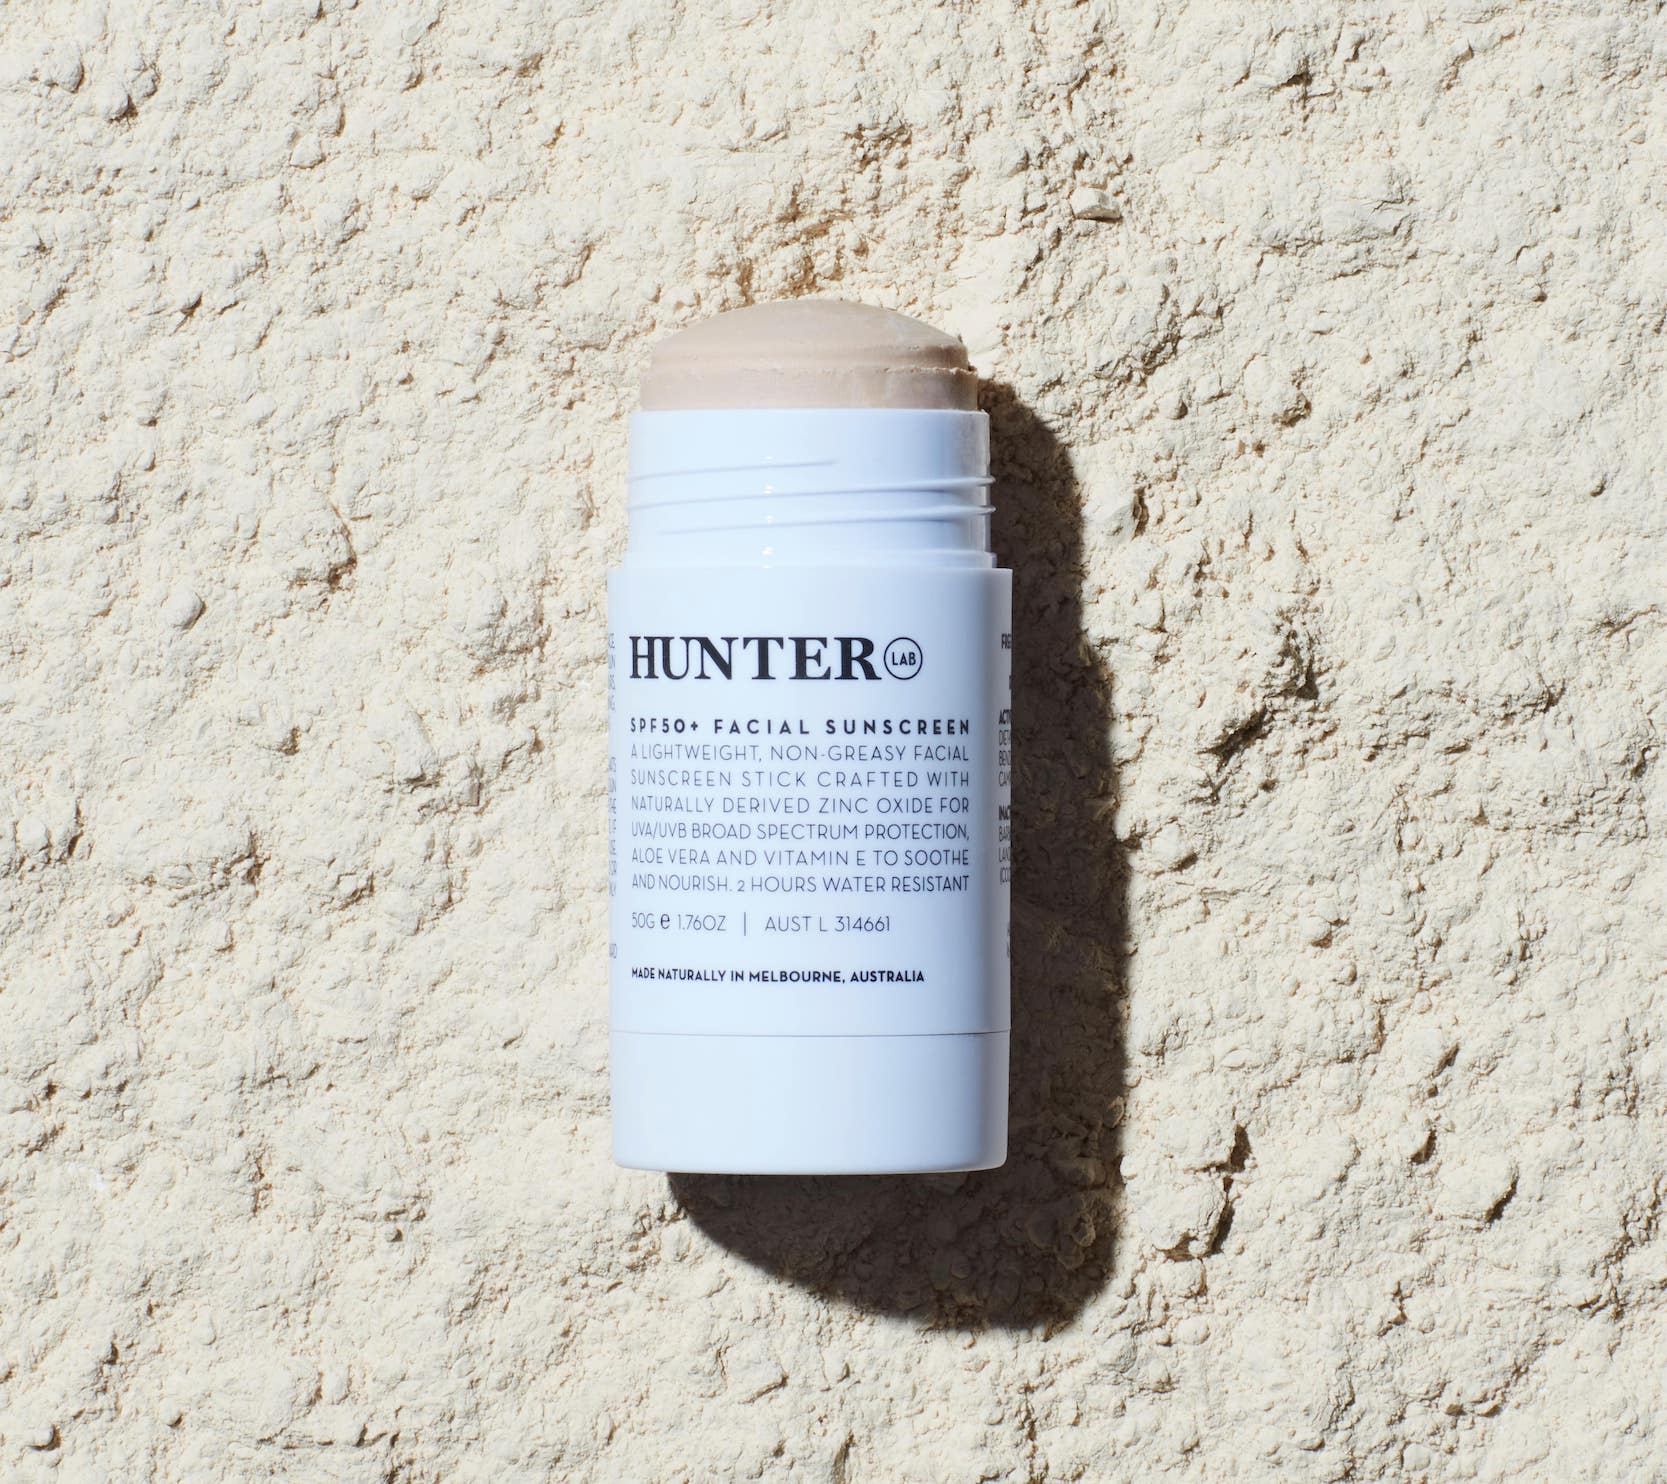 Hunter SPF50+ Facial Sunscreen - Mitchell McCabe Menswear